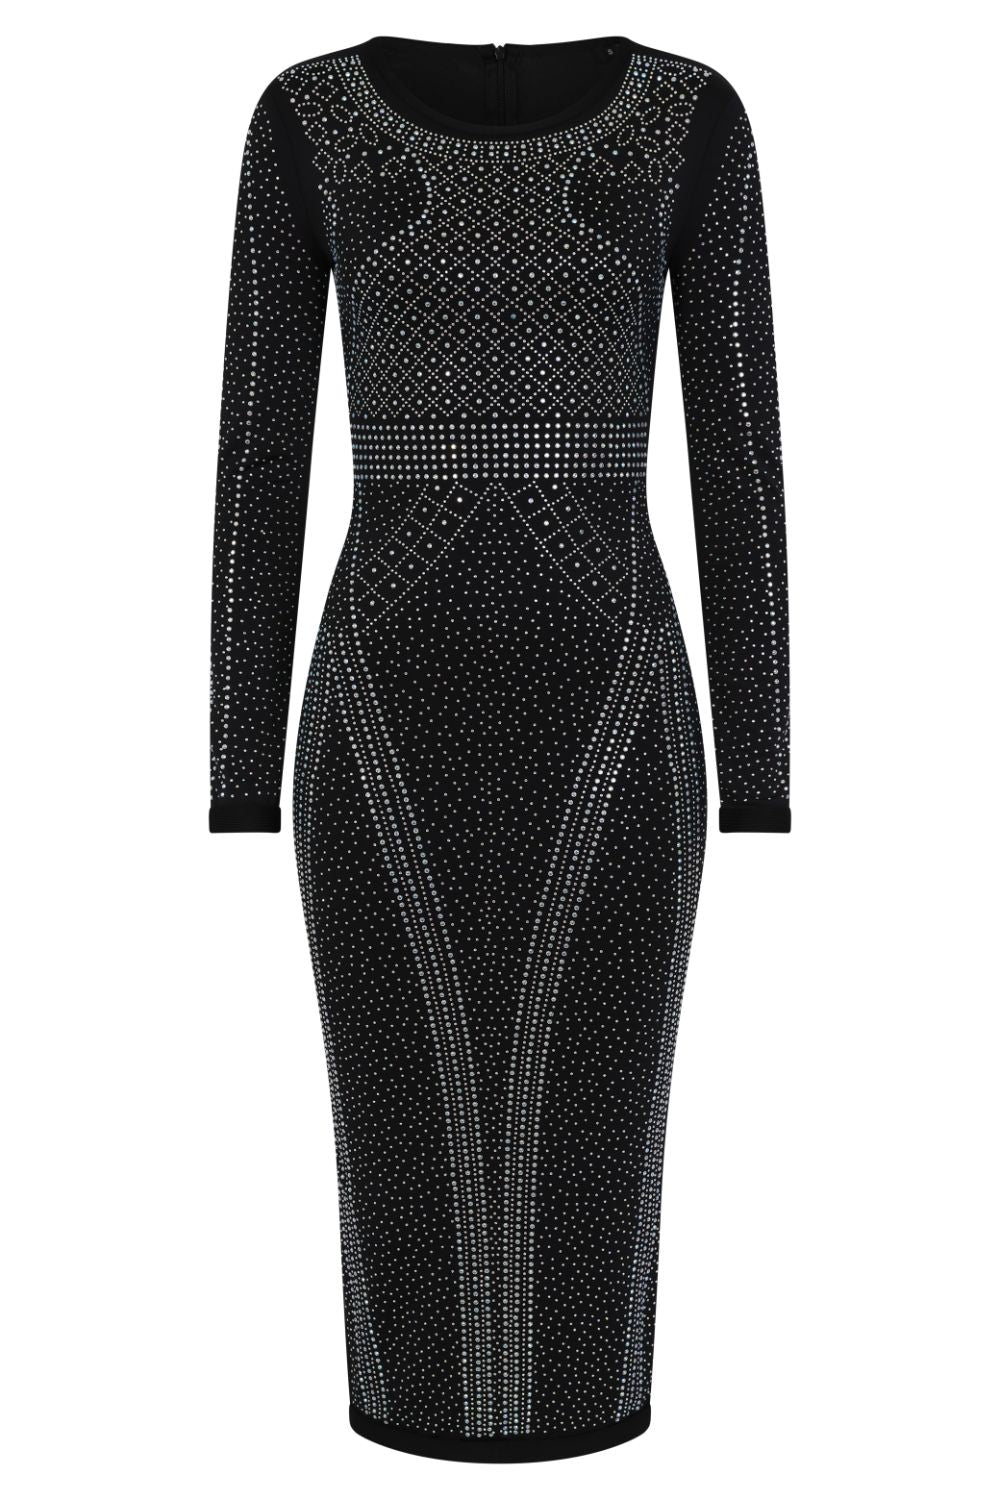 Luxor Black Caviar Crystal Rhinestone Bodycon Midi Dress